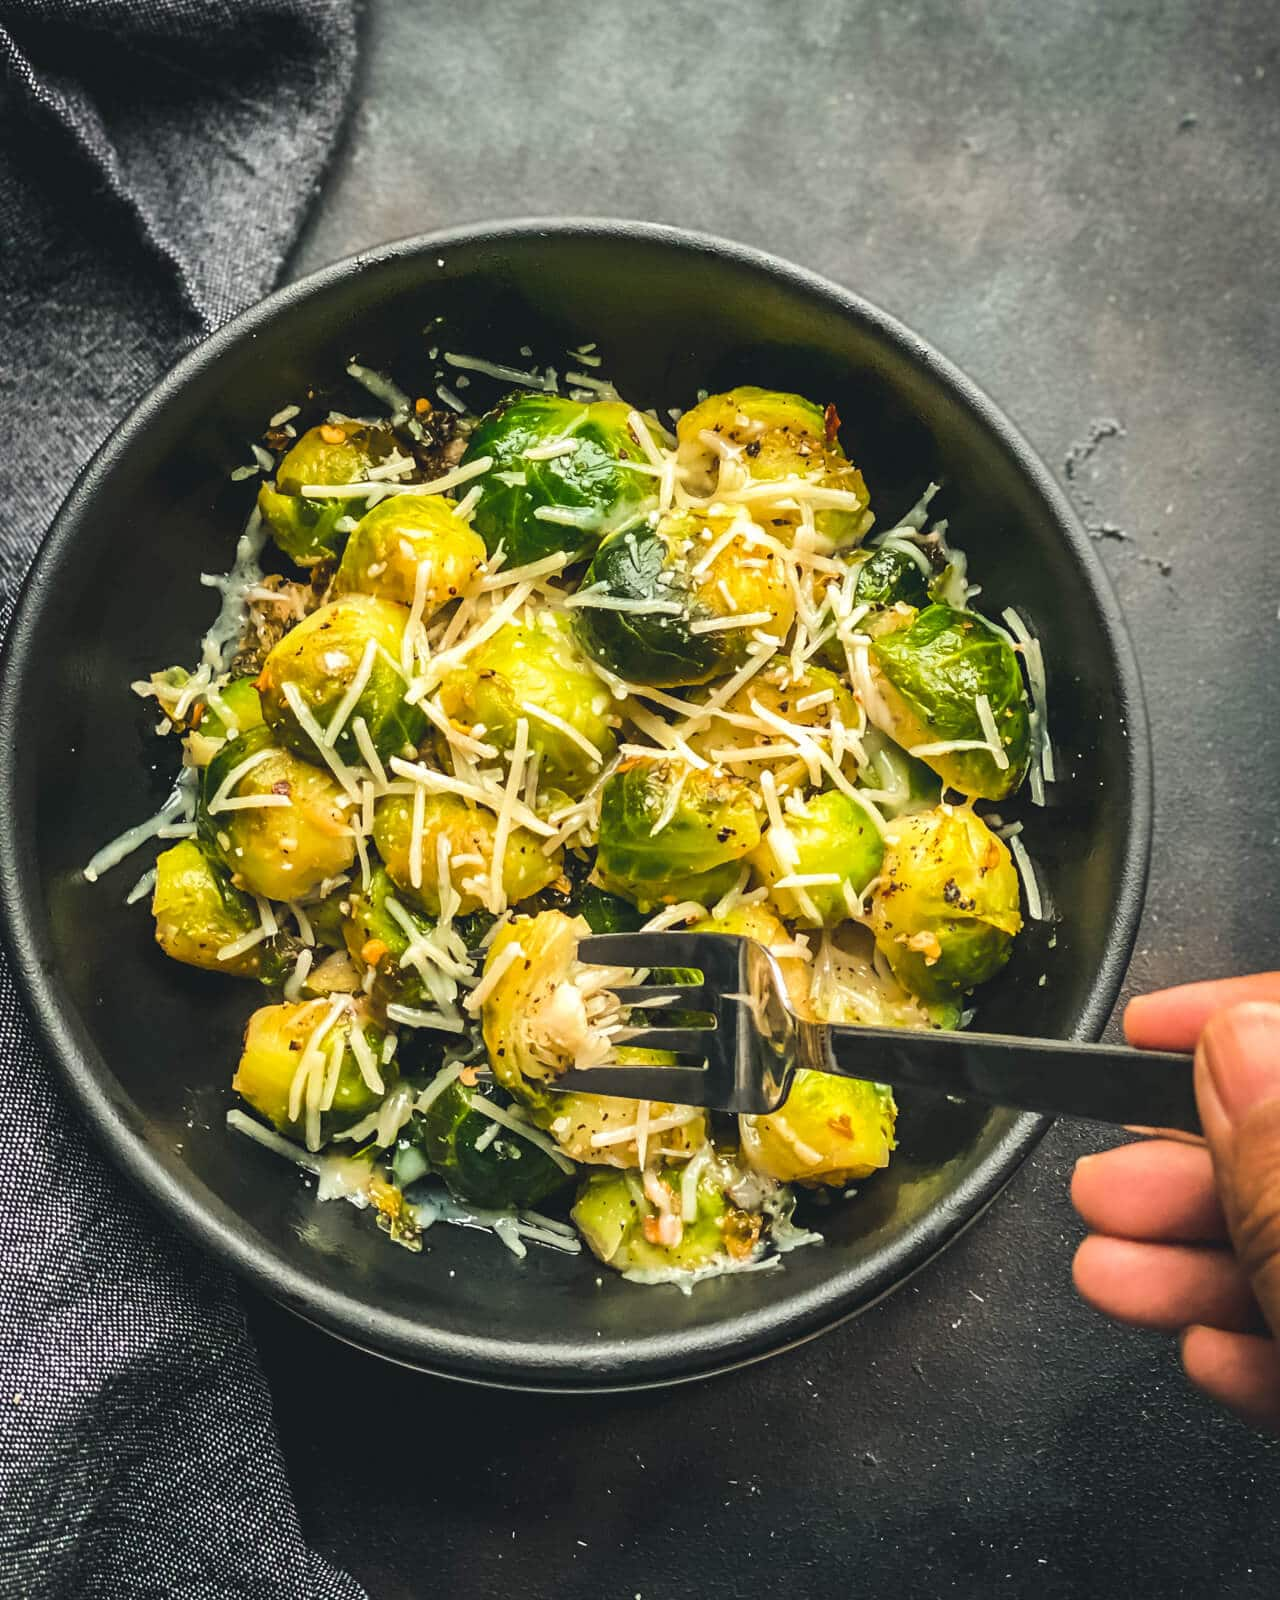 A black bowl of cheese topped steamed and sautéed Brussel sprouts with a silver fork poking into a Brussel sprout on a grey counter.